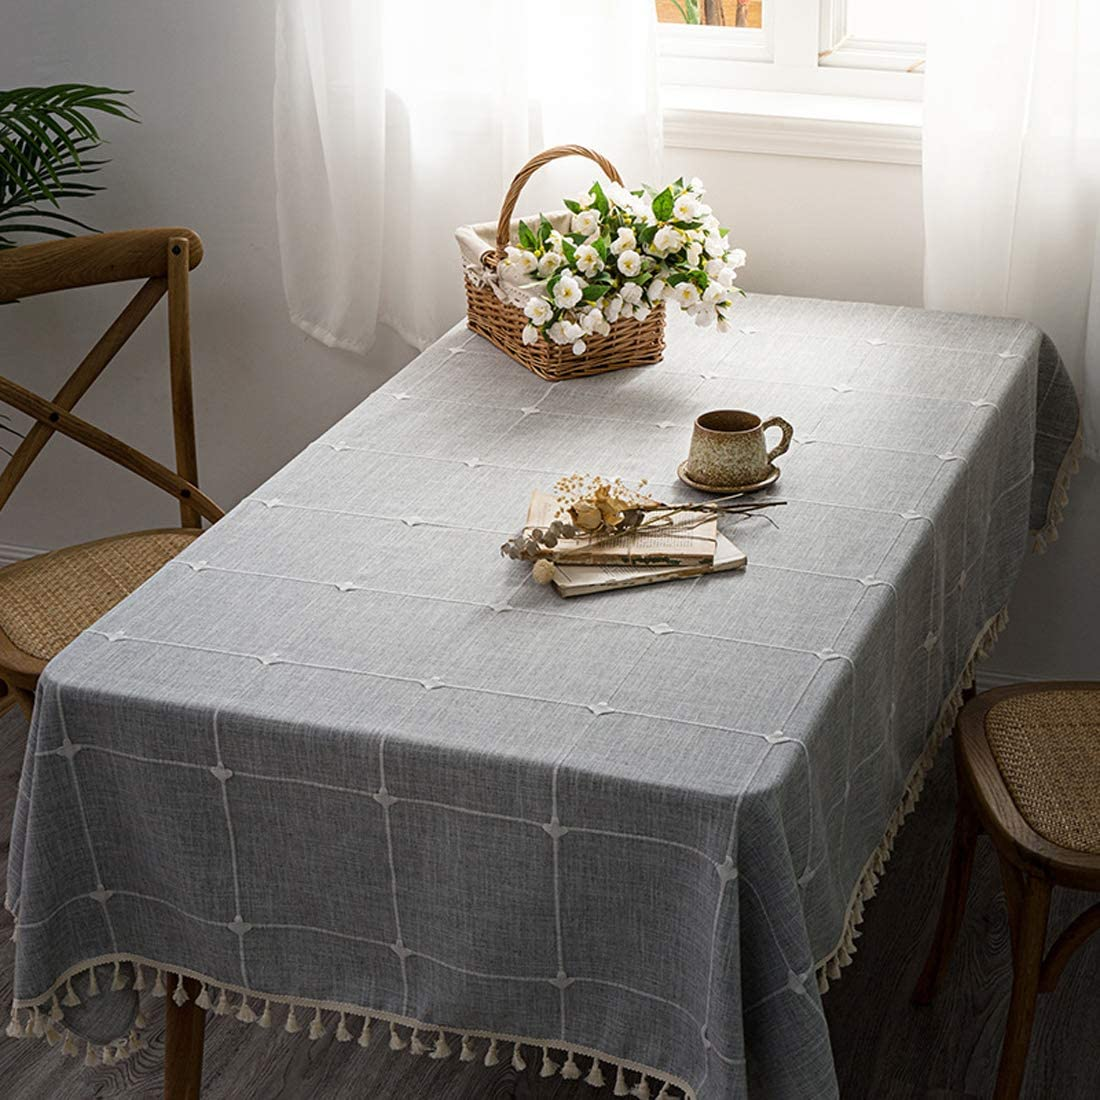 Easy to Scrub Durable and Stable BUBIQUER Flannel Backed Vinyl Tablecloth 54 x 54 Table Cover for Indoor and Outdoor Decoration Waterproof and Oil Proof Blue